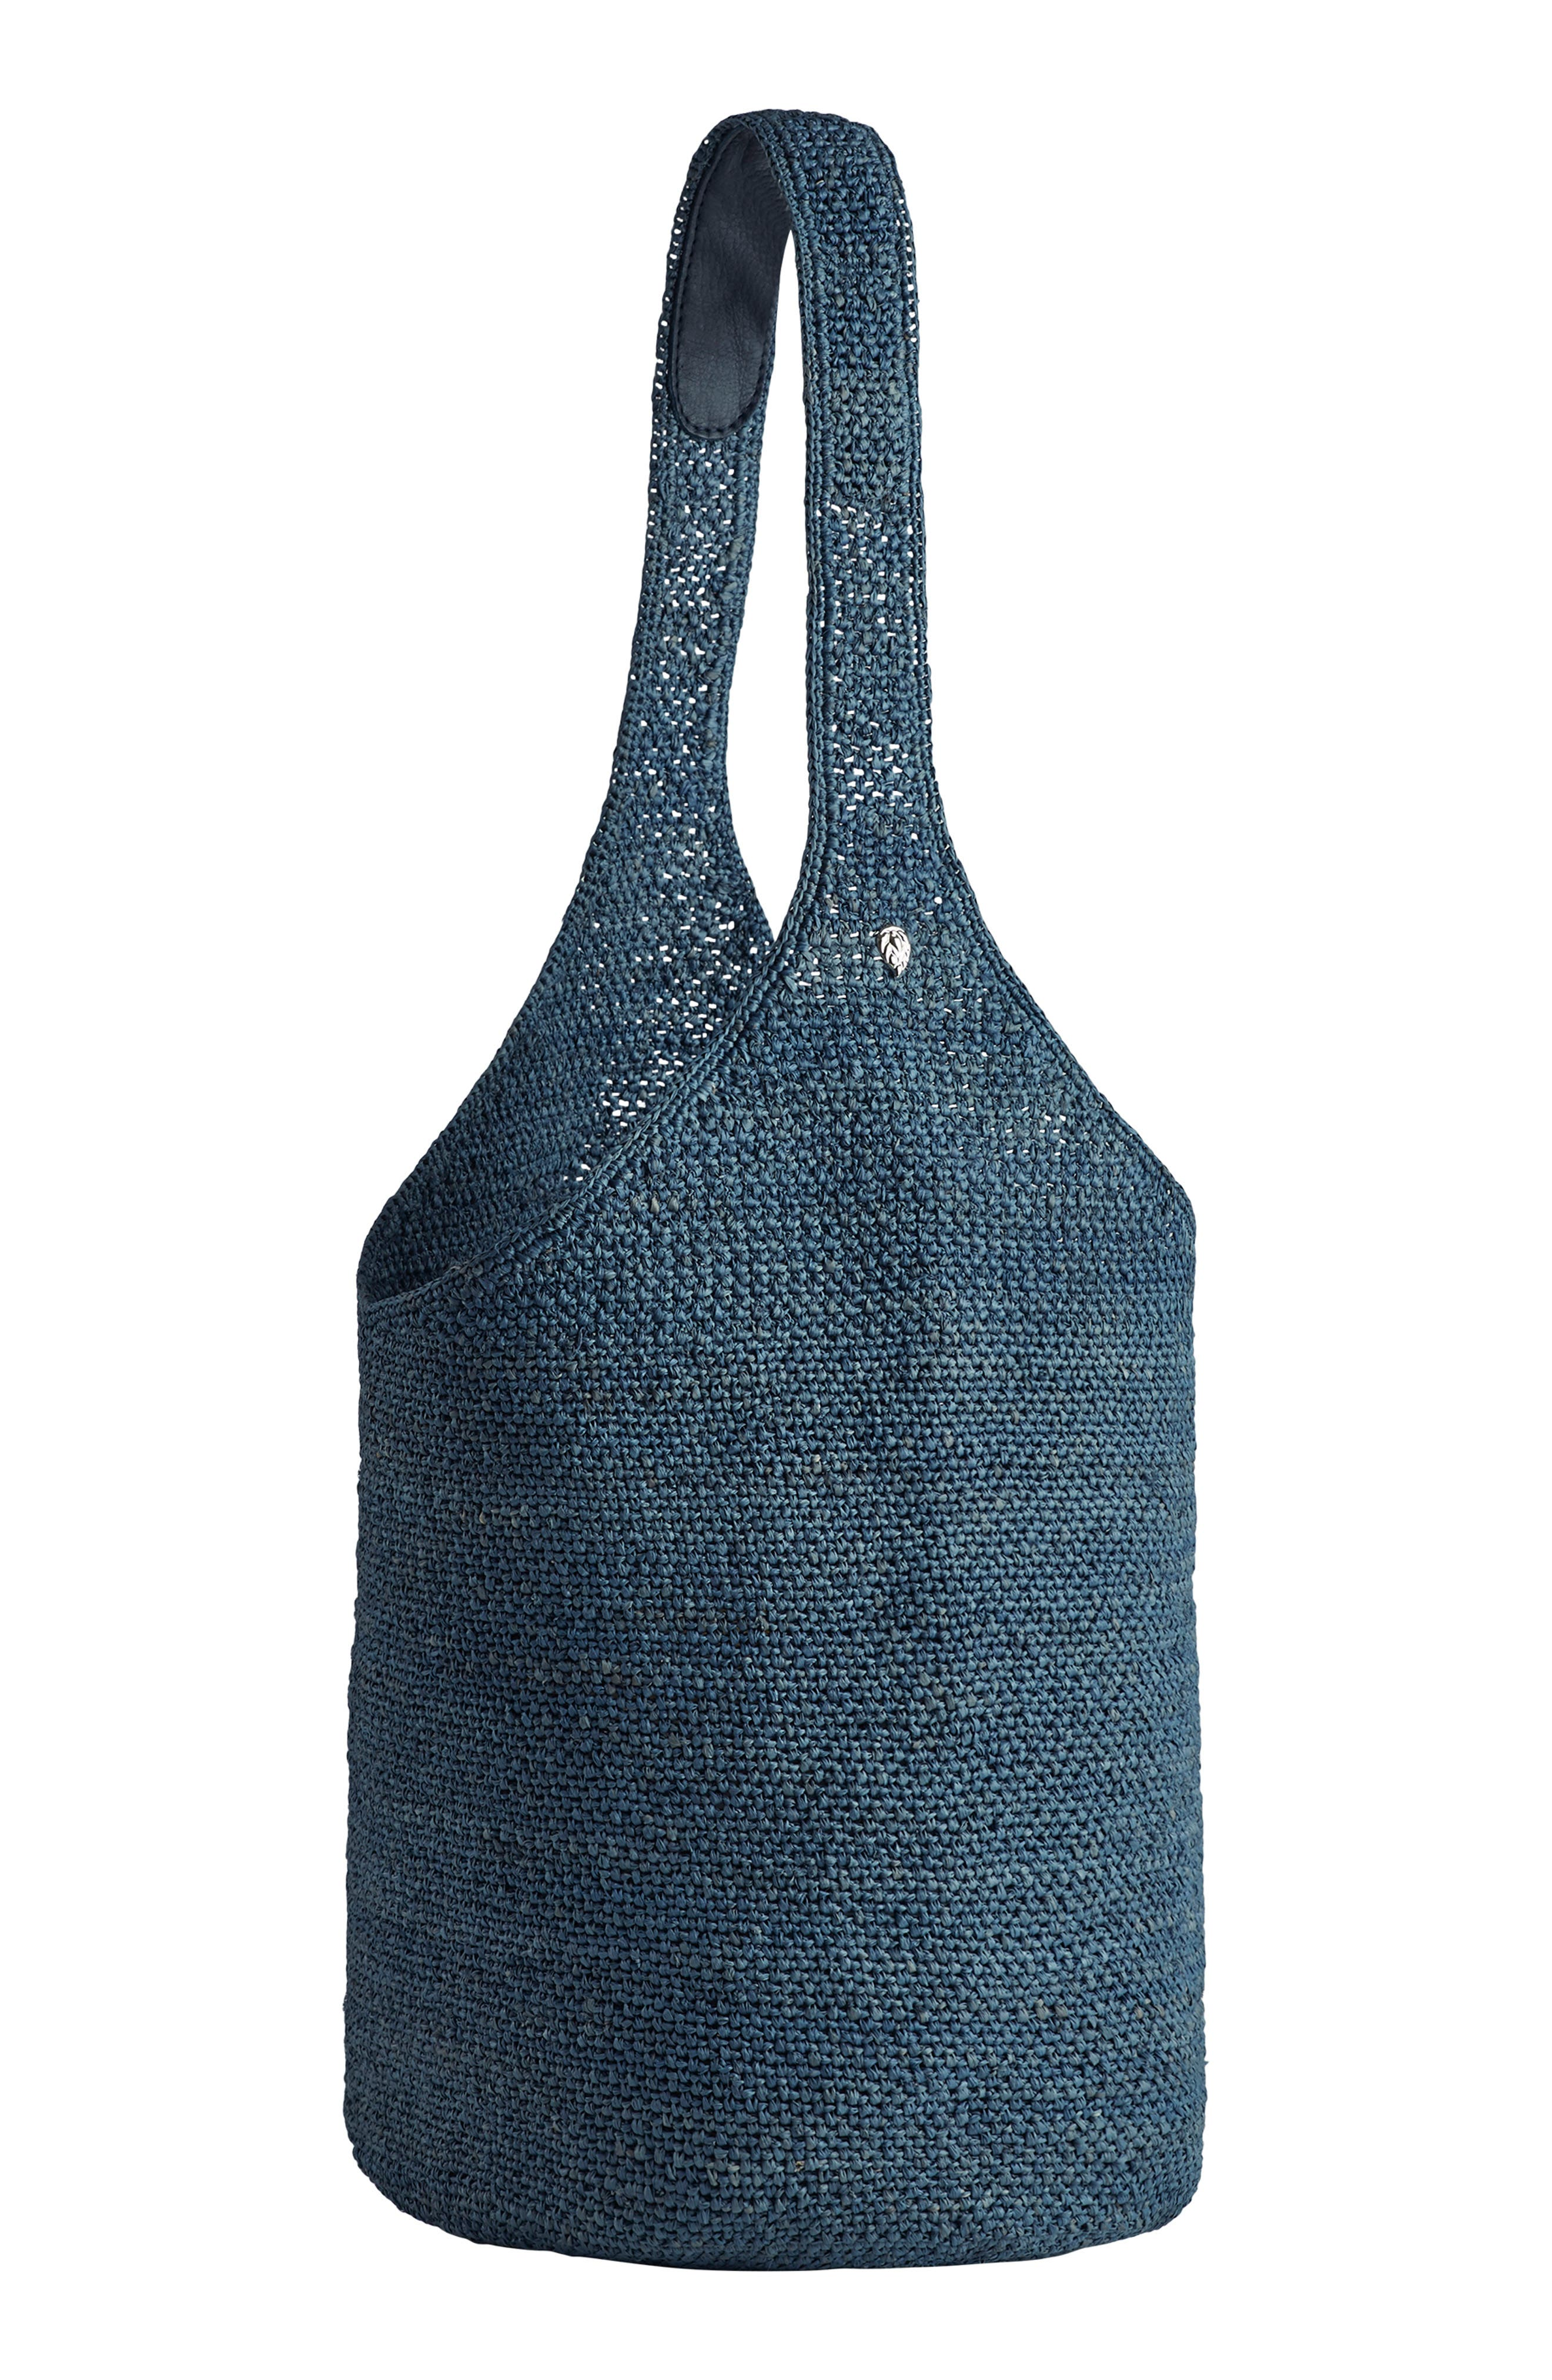 Helen Kaminksi Carillo Woven Raffia Sac Bucket Bag,                             Main thumbnail 1, color,                             GLACIAL